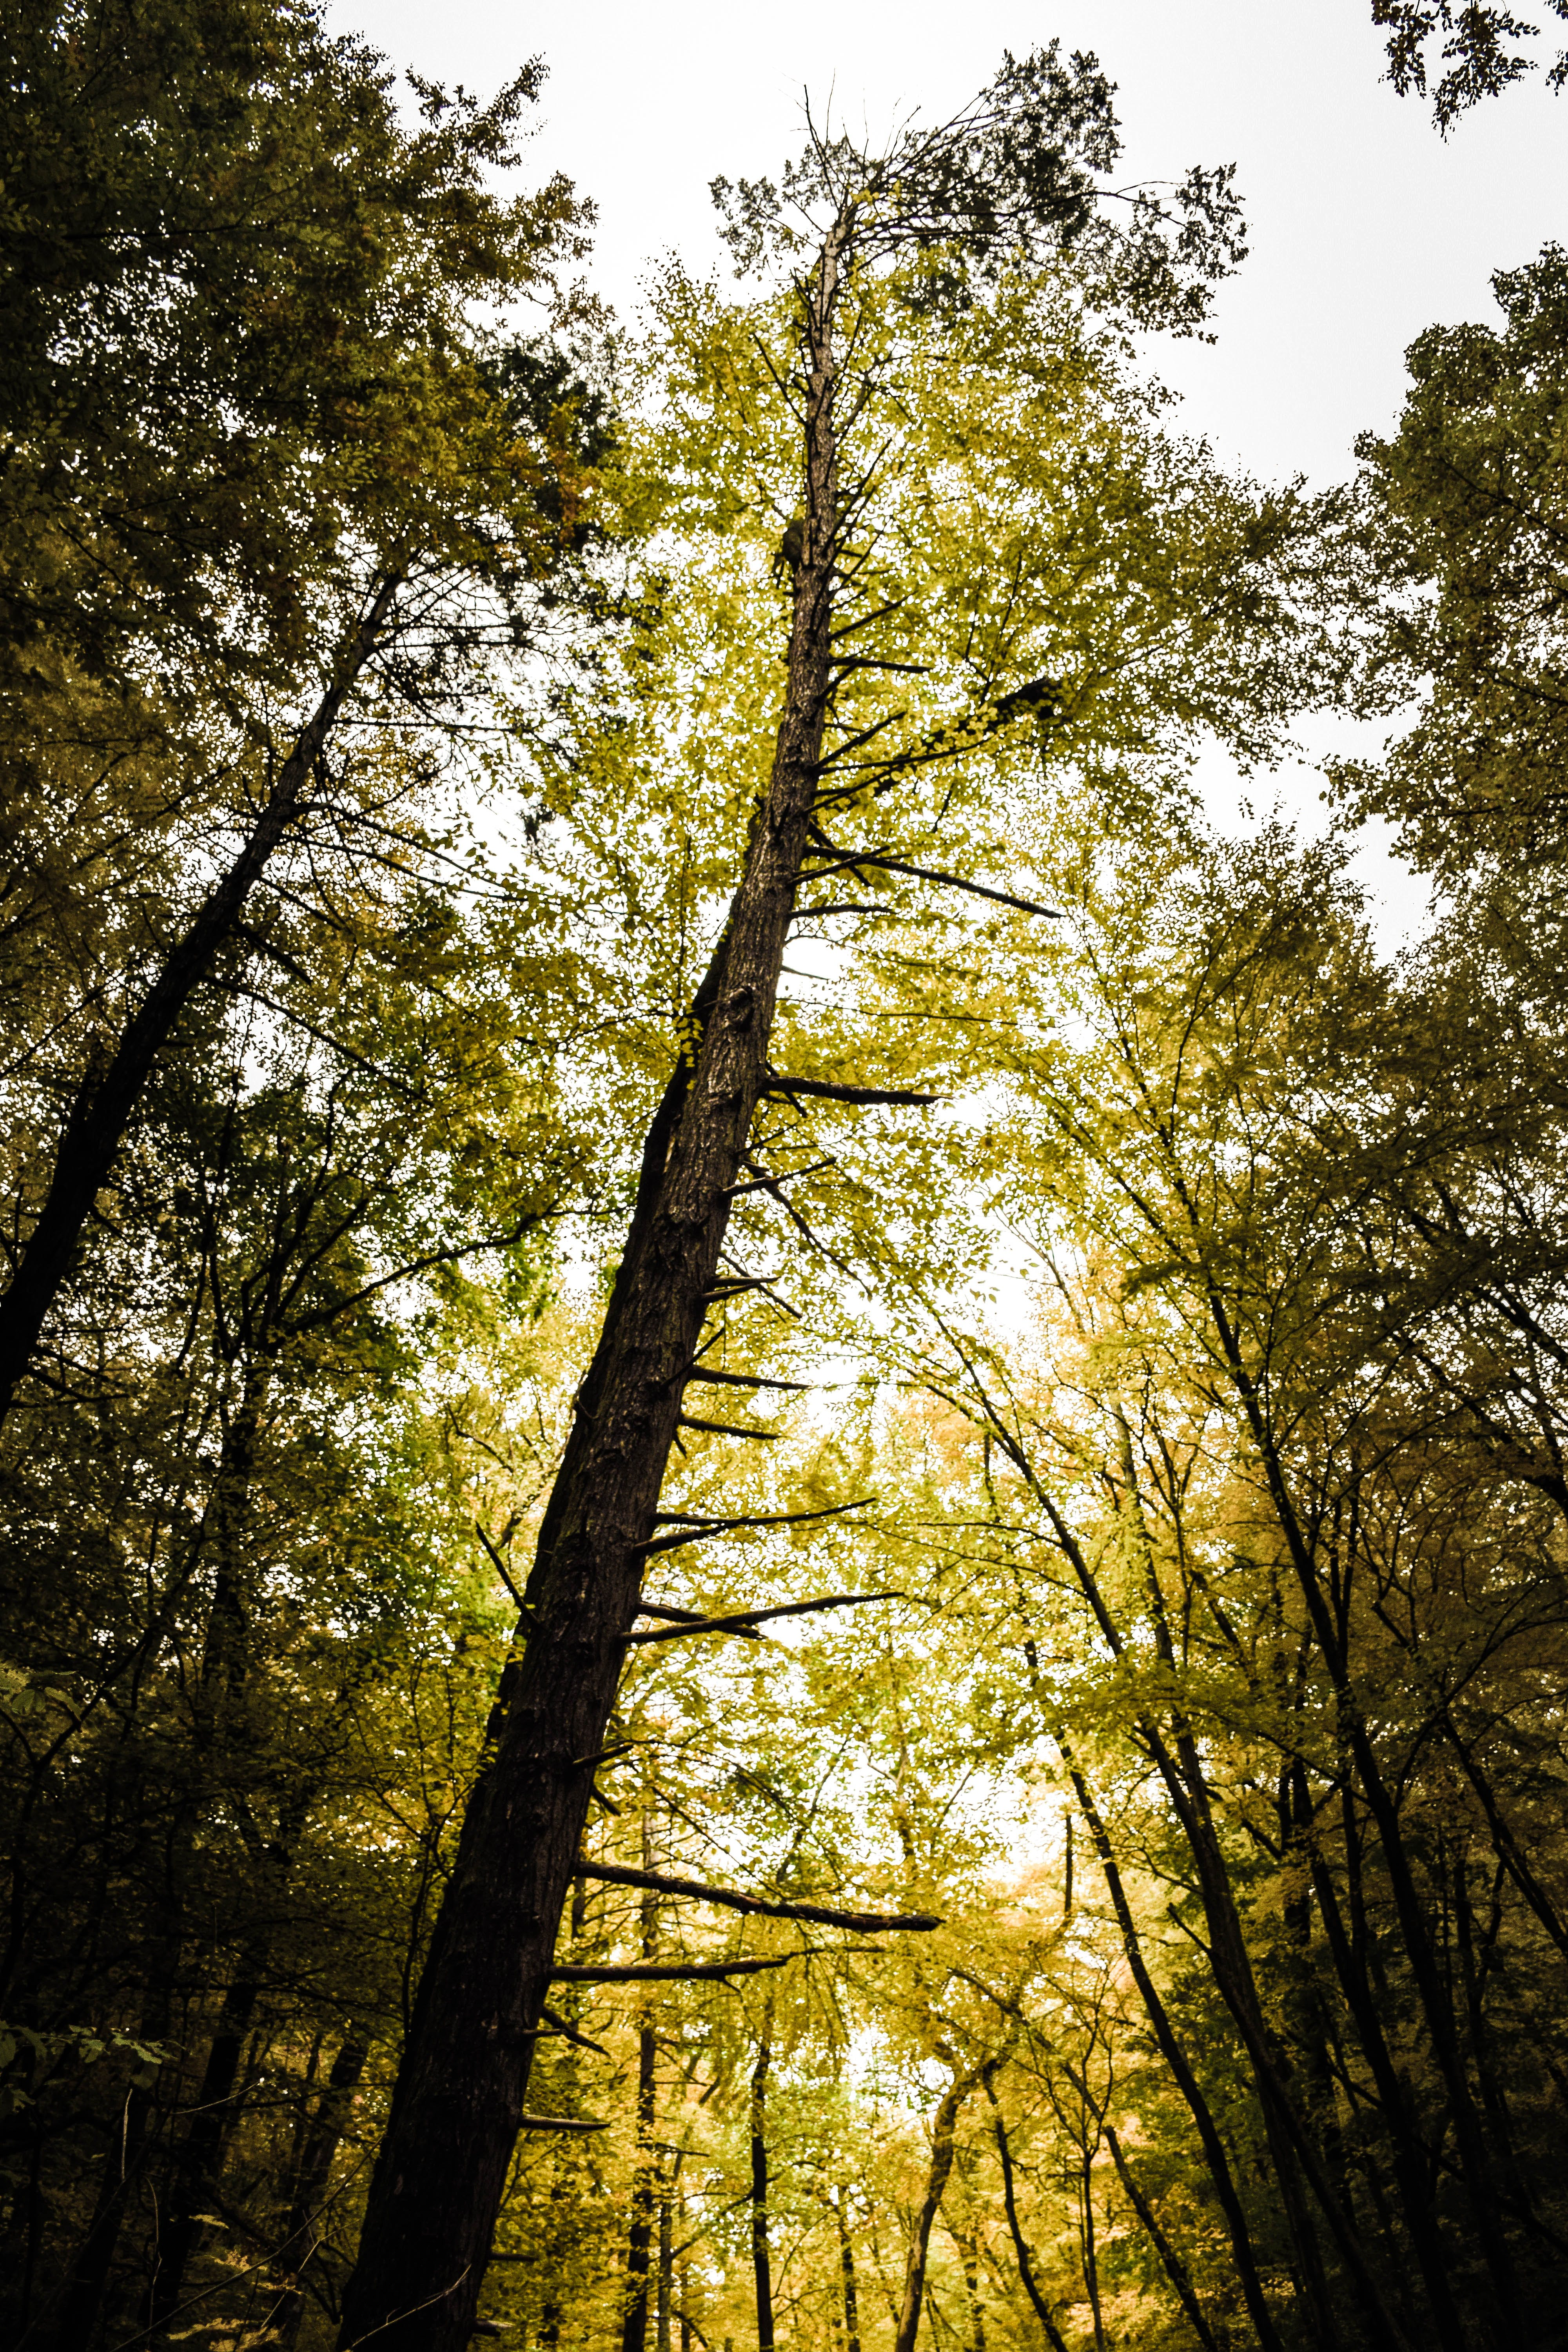 Low Angle Photography of Green-leafed Tree